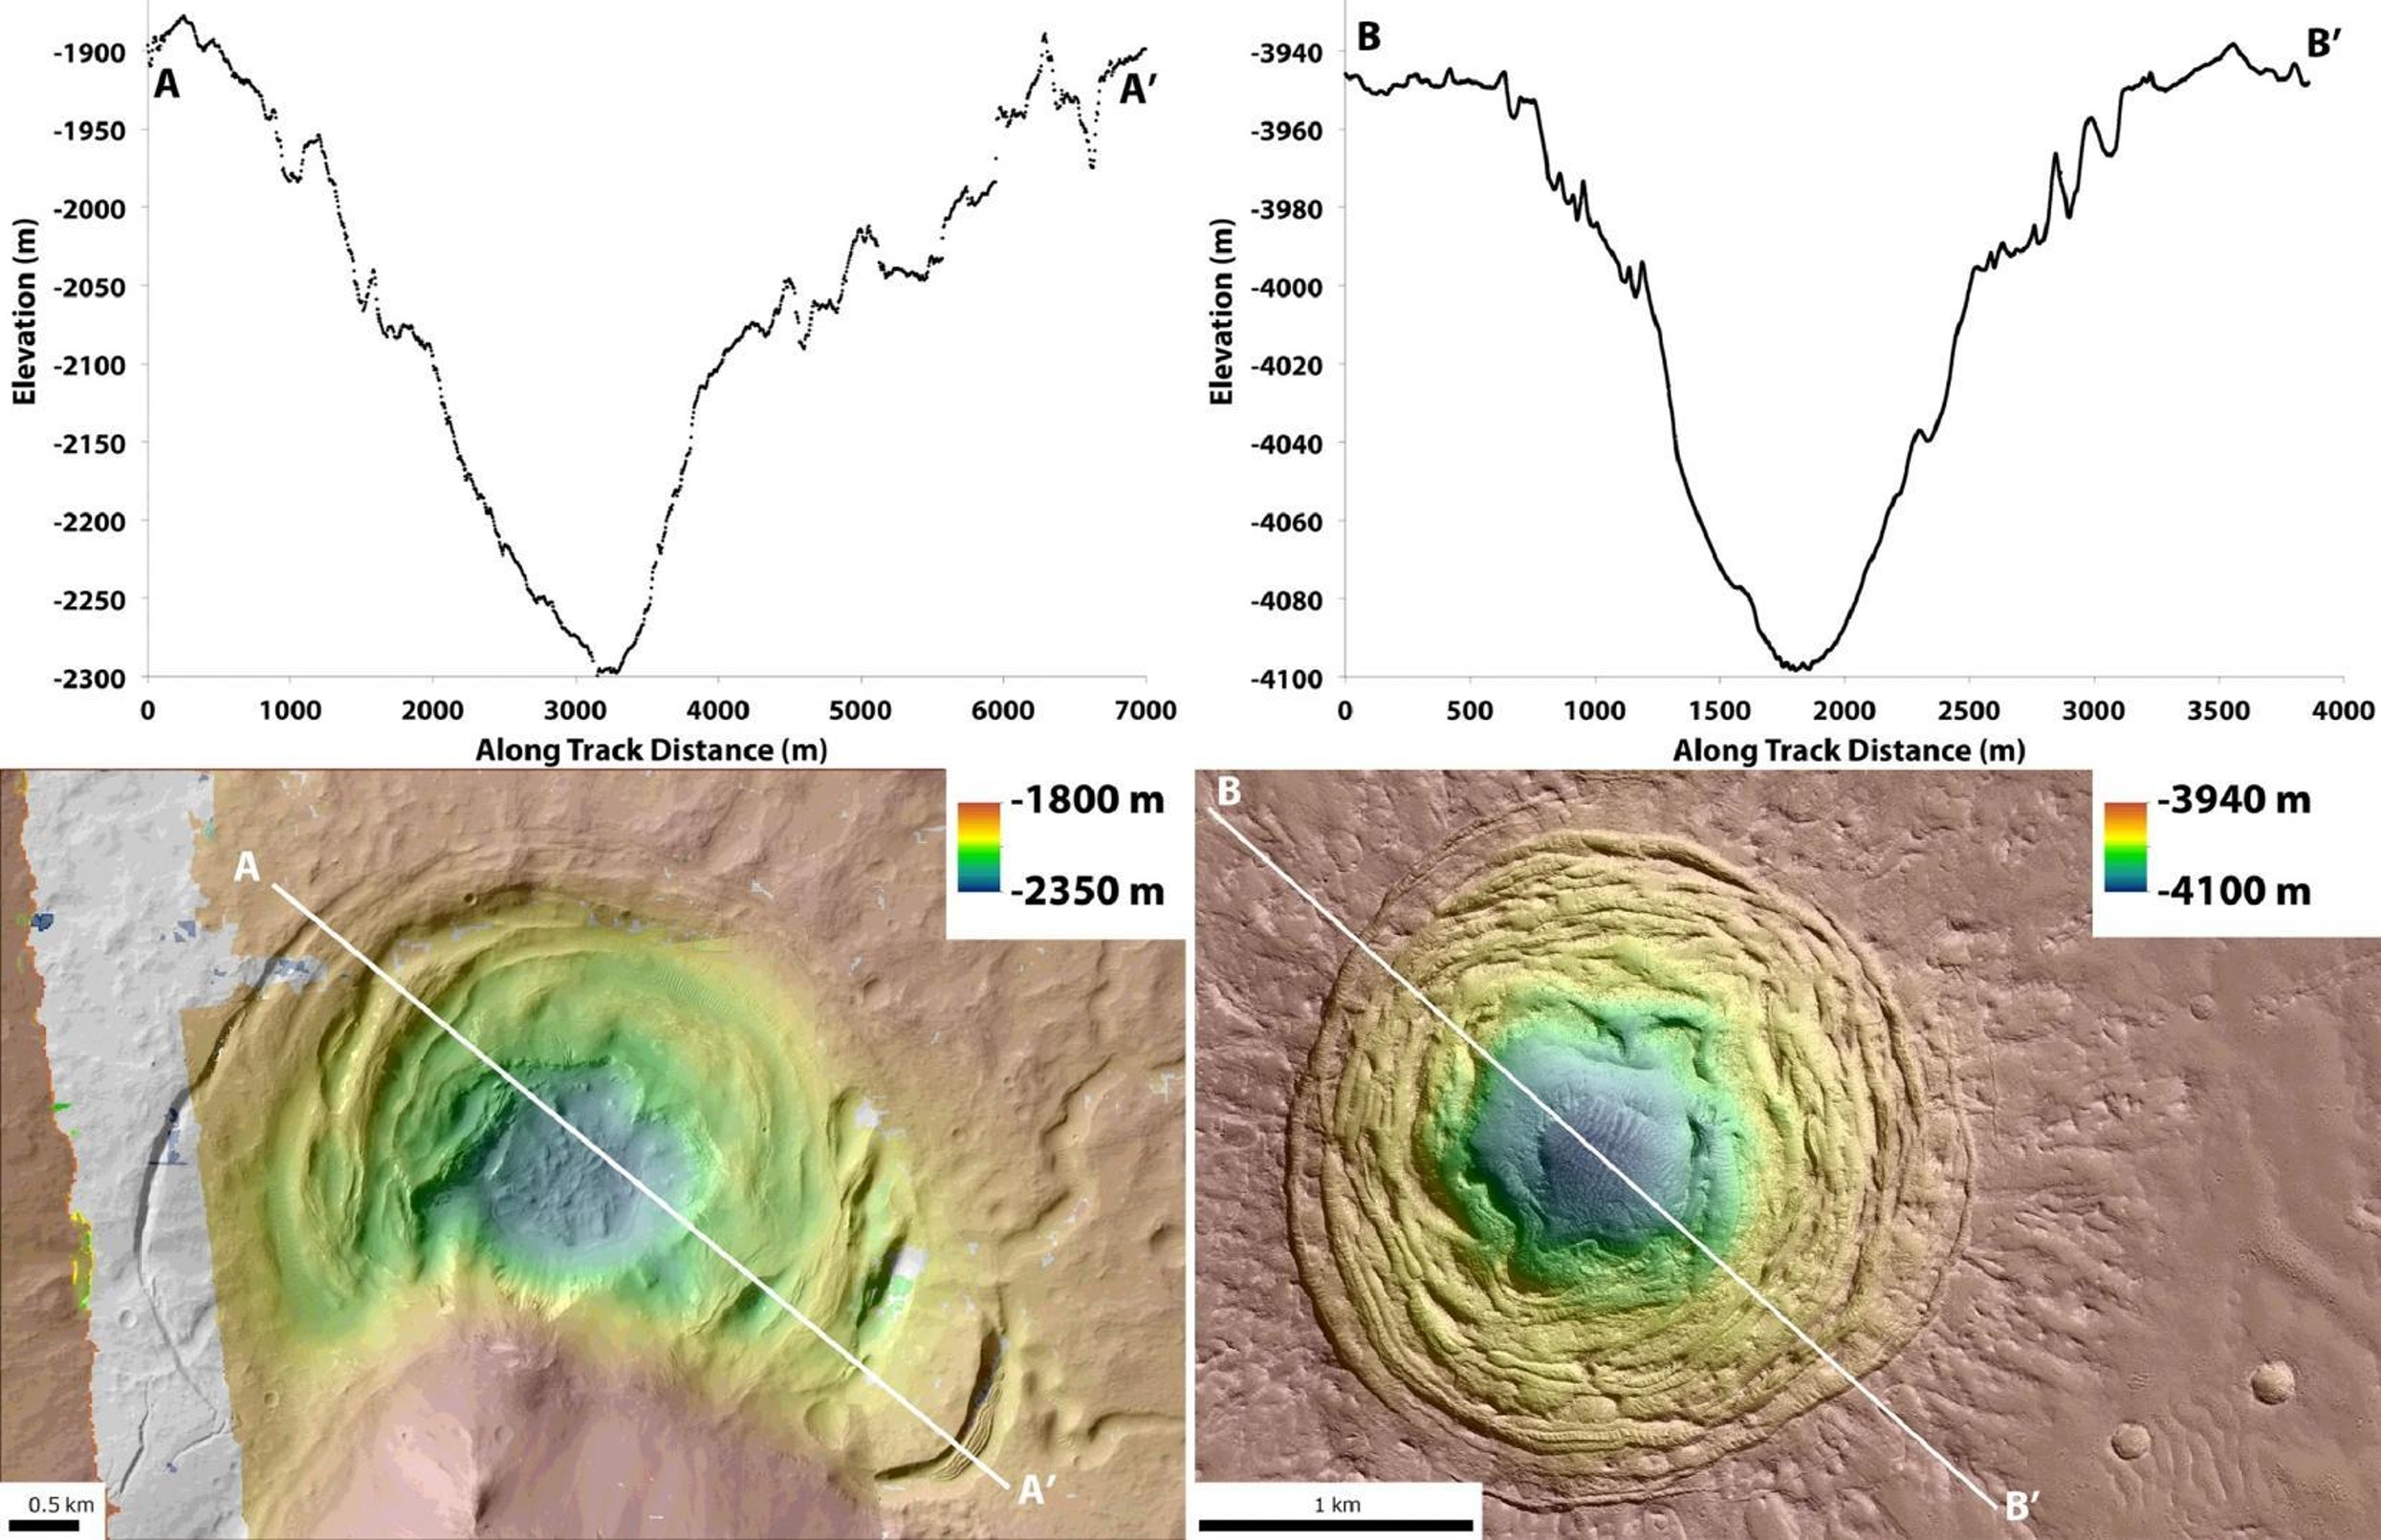 Charting the depths of the Hellas basin crater (left) and the Galaxias Fossae crater (right).